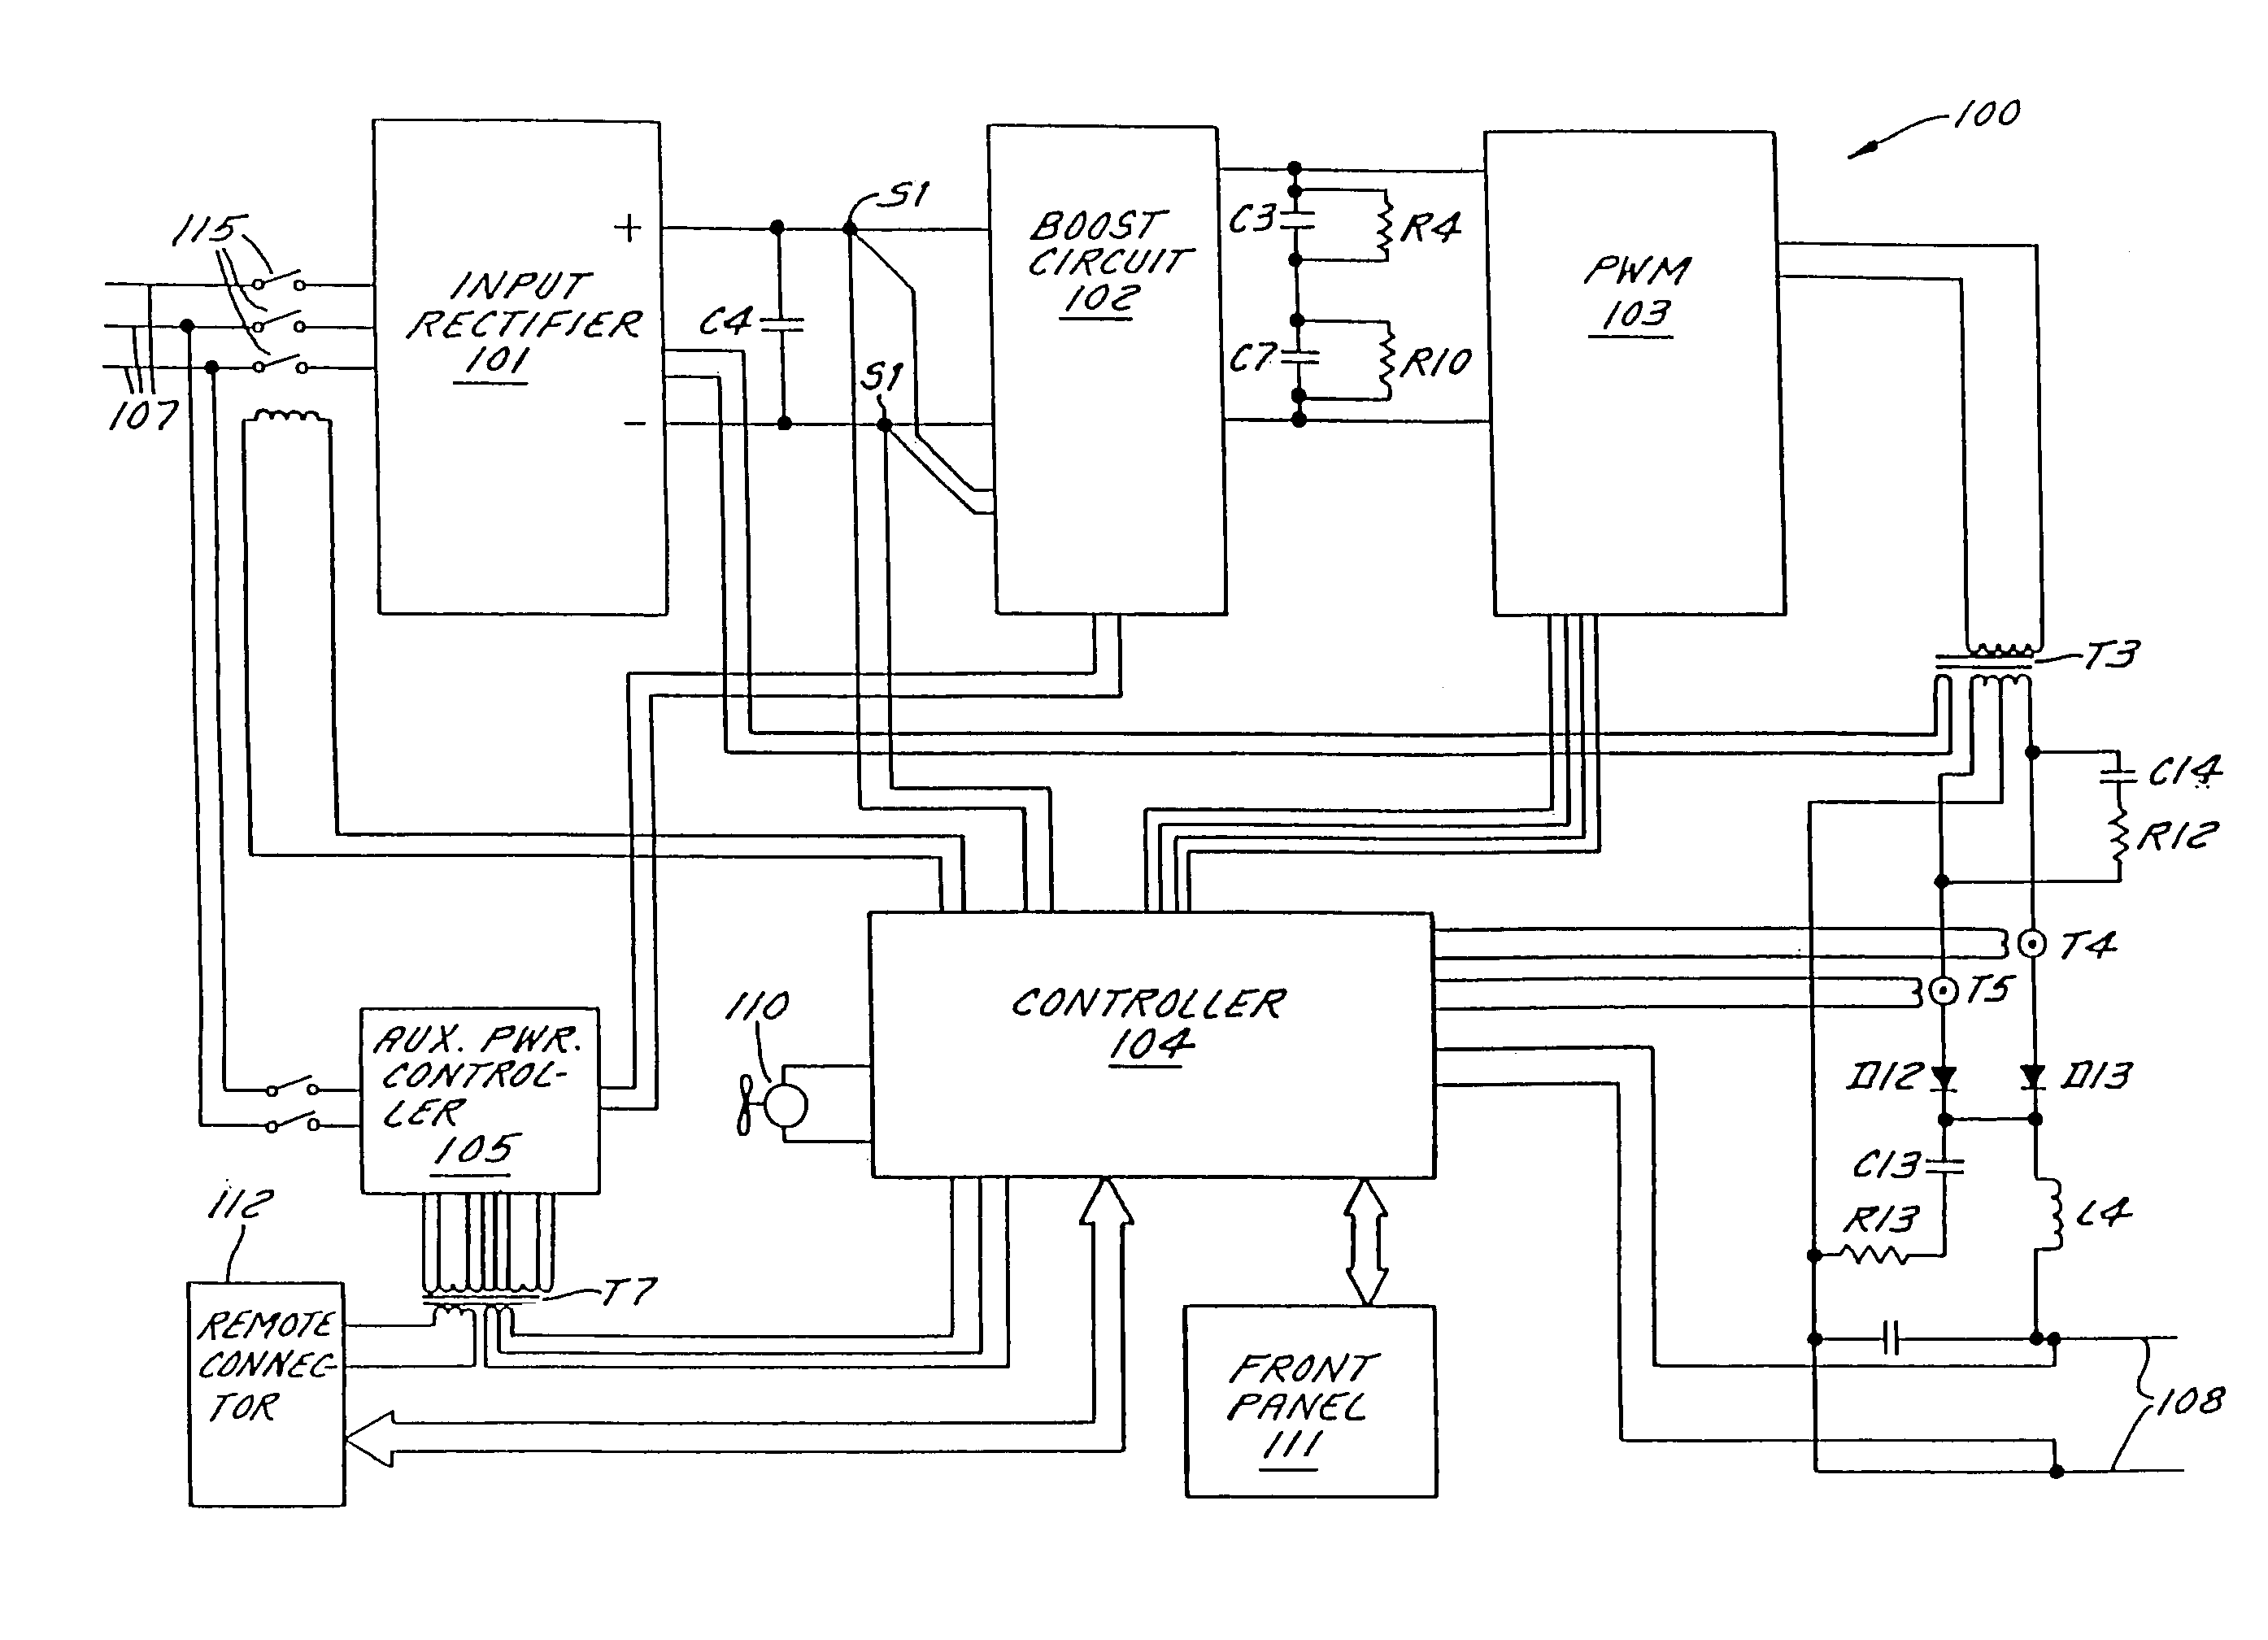 200 lincoln continental wiring diagrams